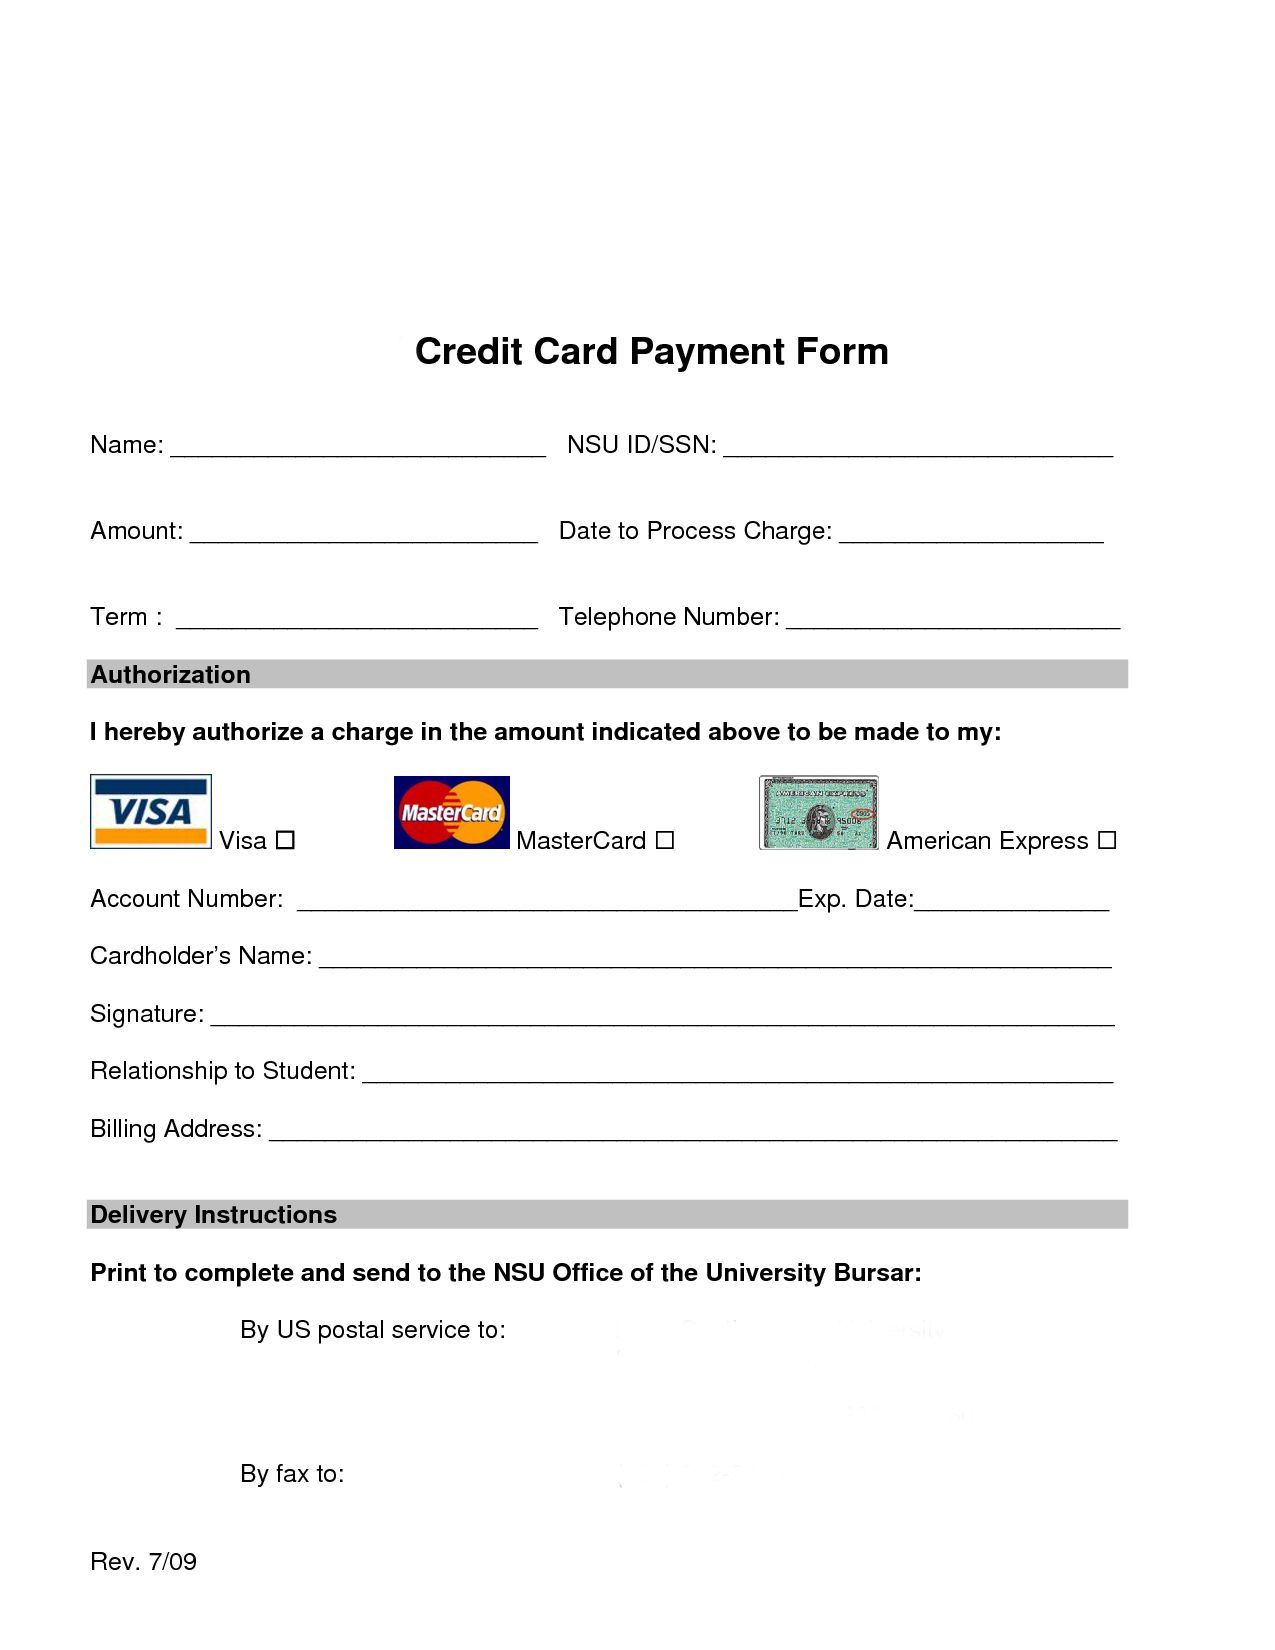 Credit Card Processing Form Web Design List Of Jobs Pertaining To Order Form With Credit Card Templa Credit Card Images Free Credit Card Credit Card Design